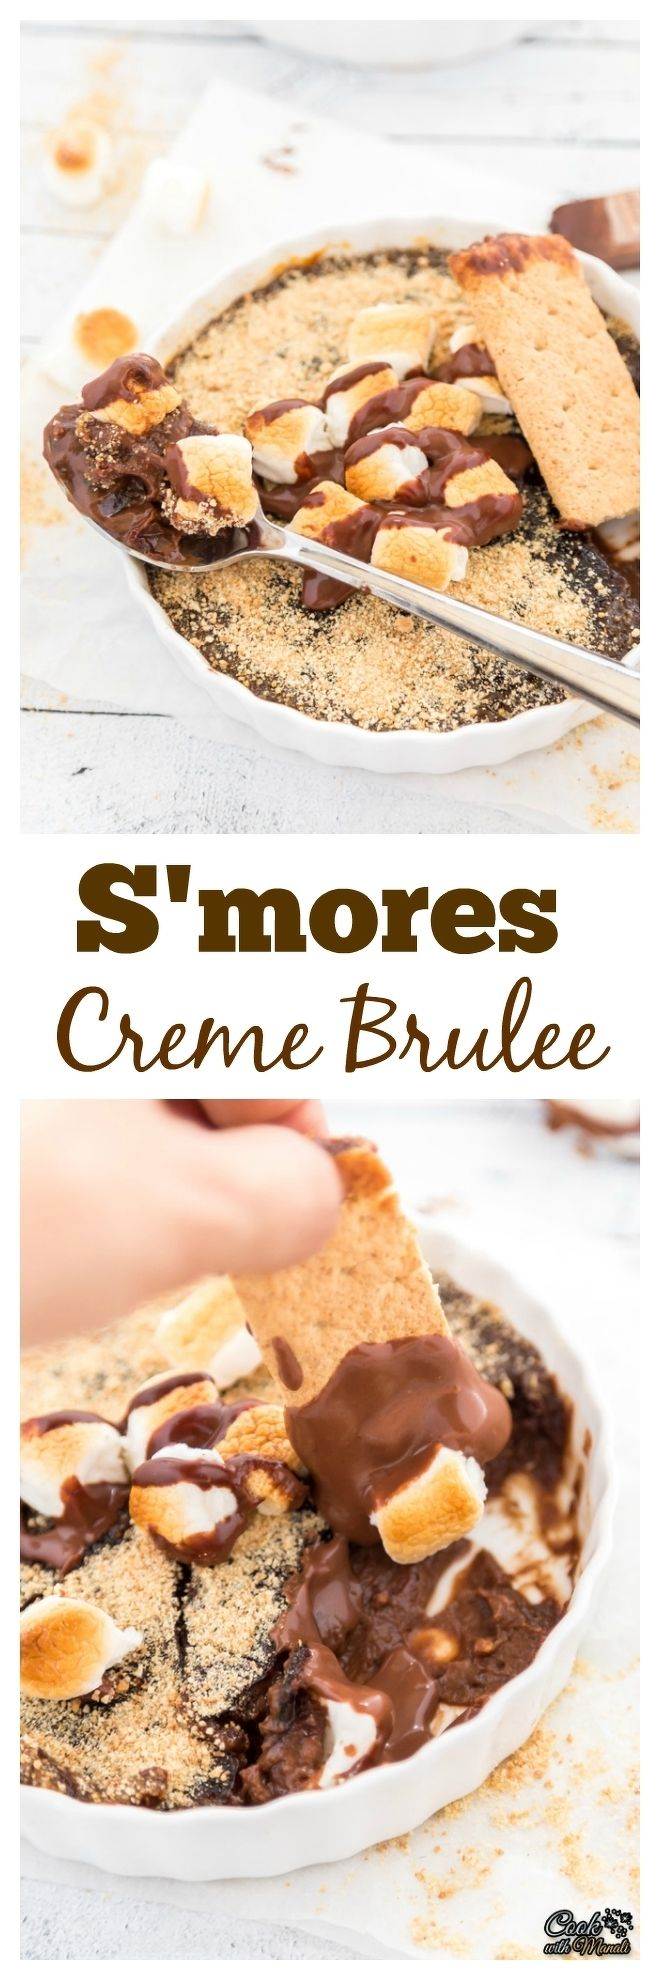 S'mores Creme Brulee Collage-nocwm